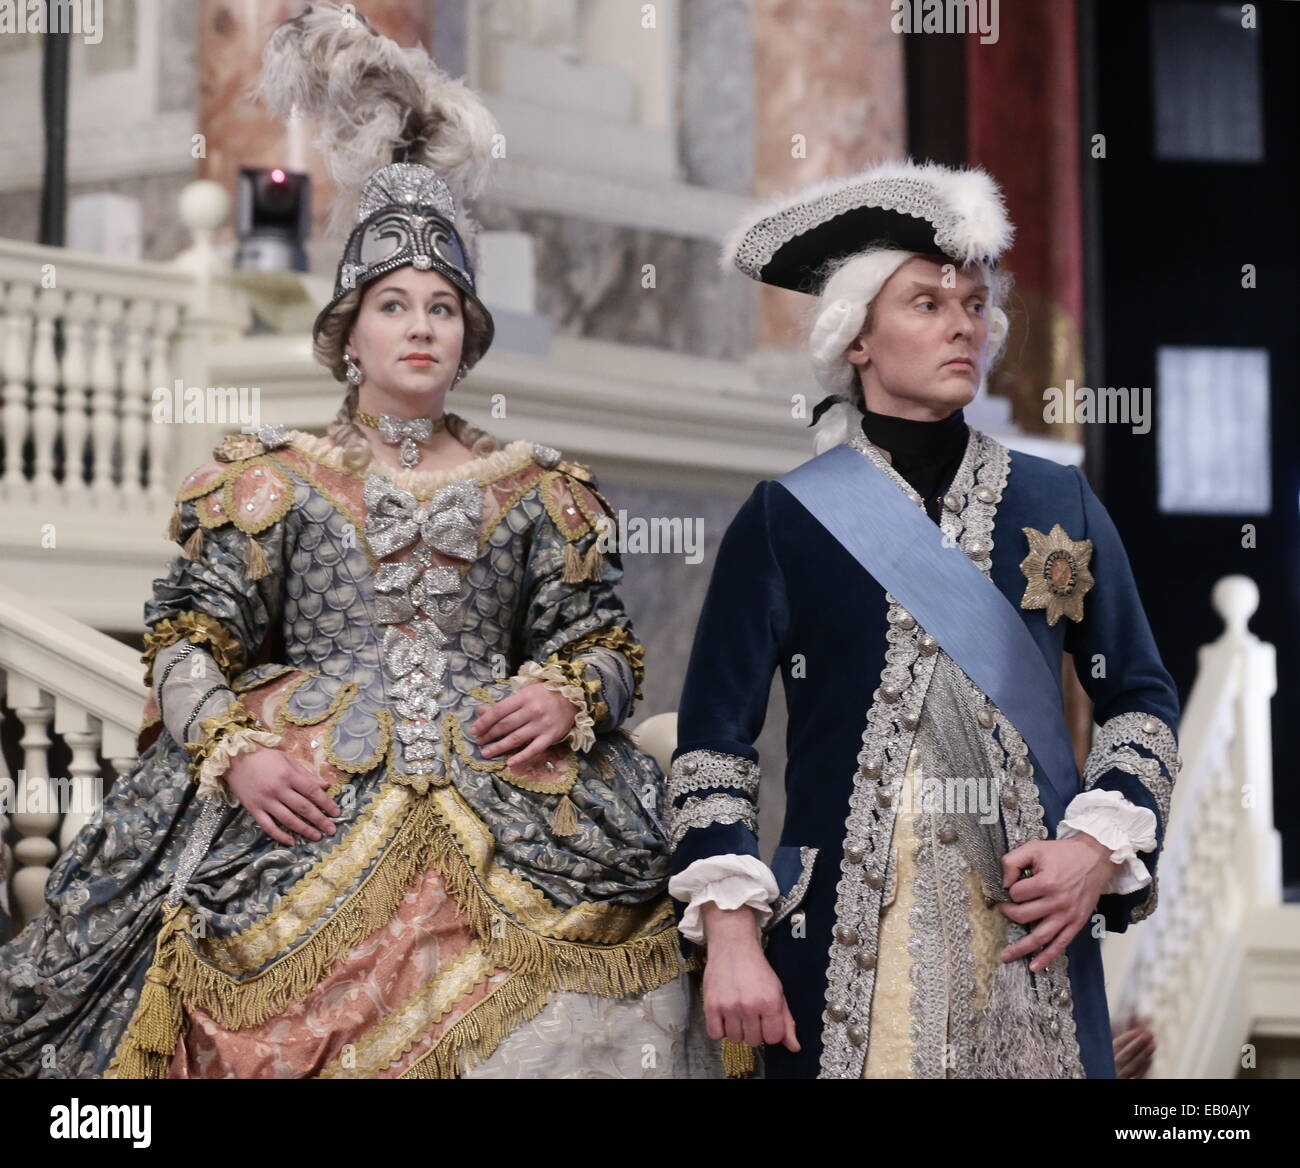 St. Petersburg, Russia. 22nd Nov, 2014. Actors wearing historical costume perform during the 'Animated' - Stock Image